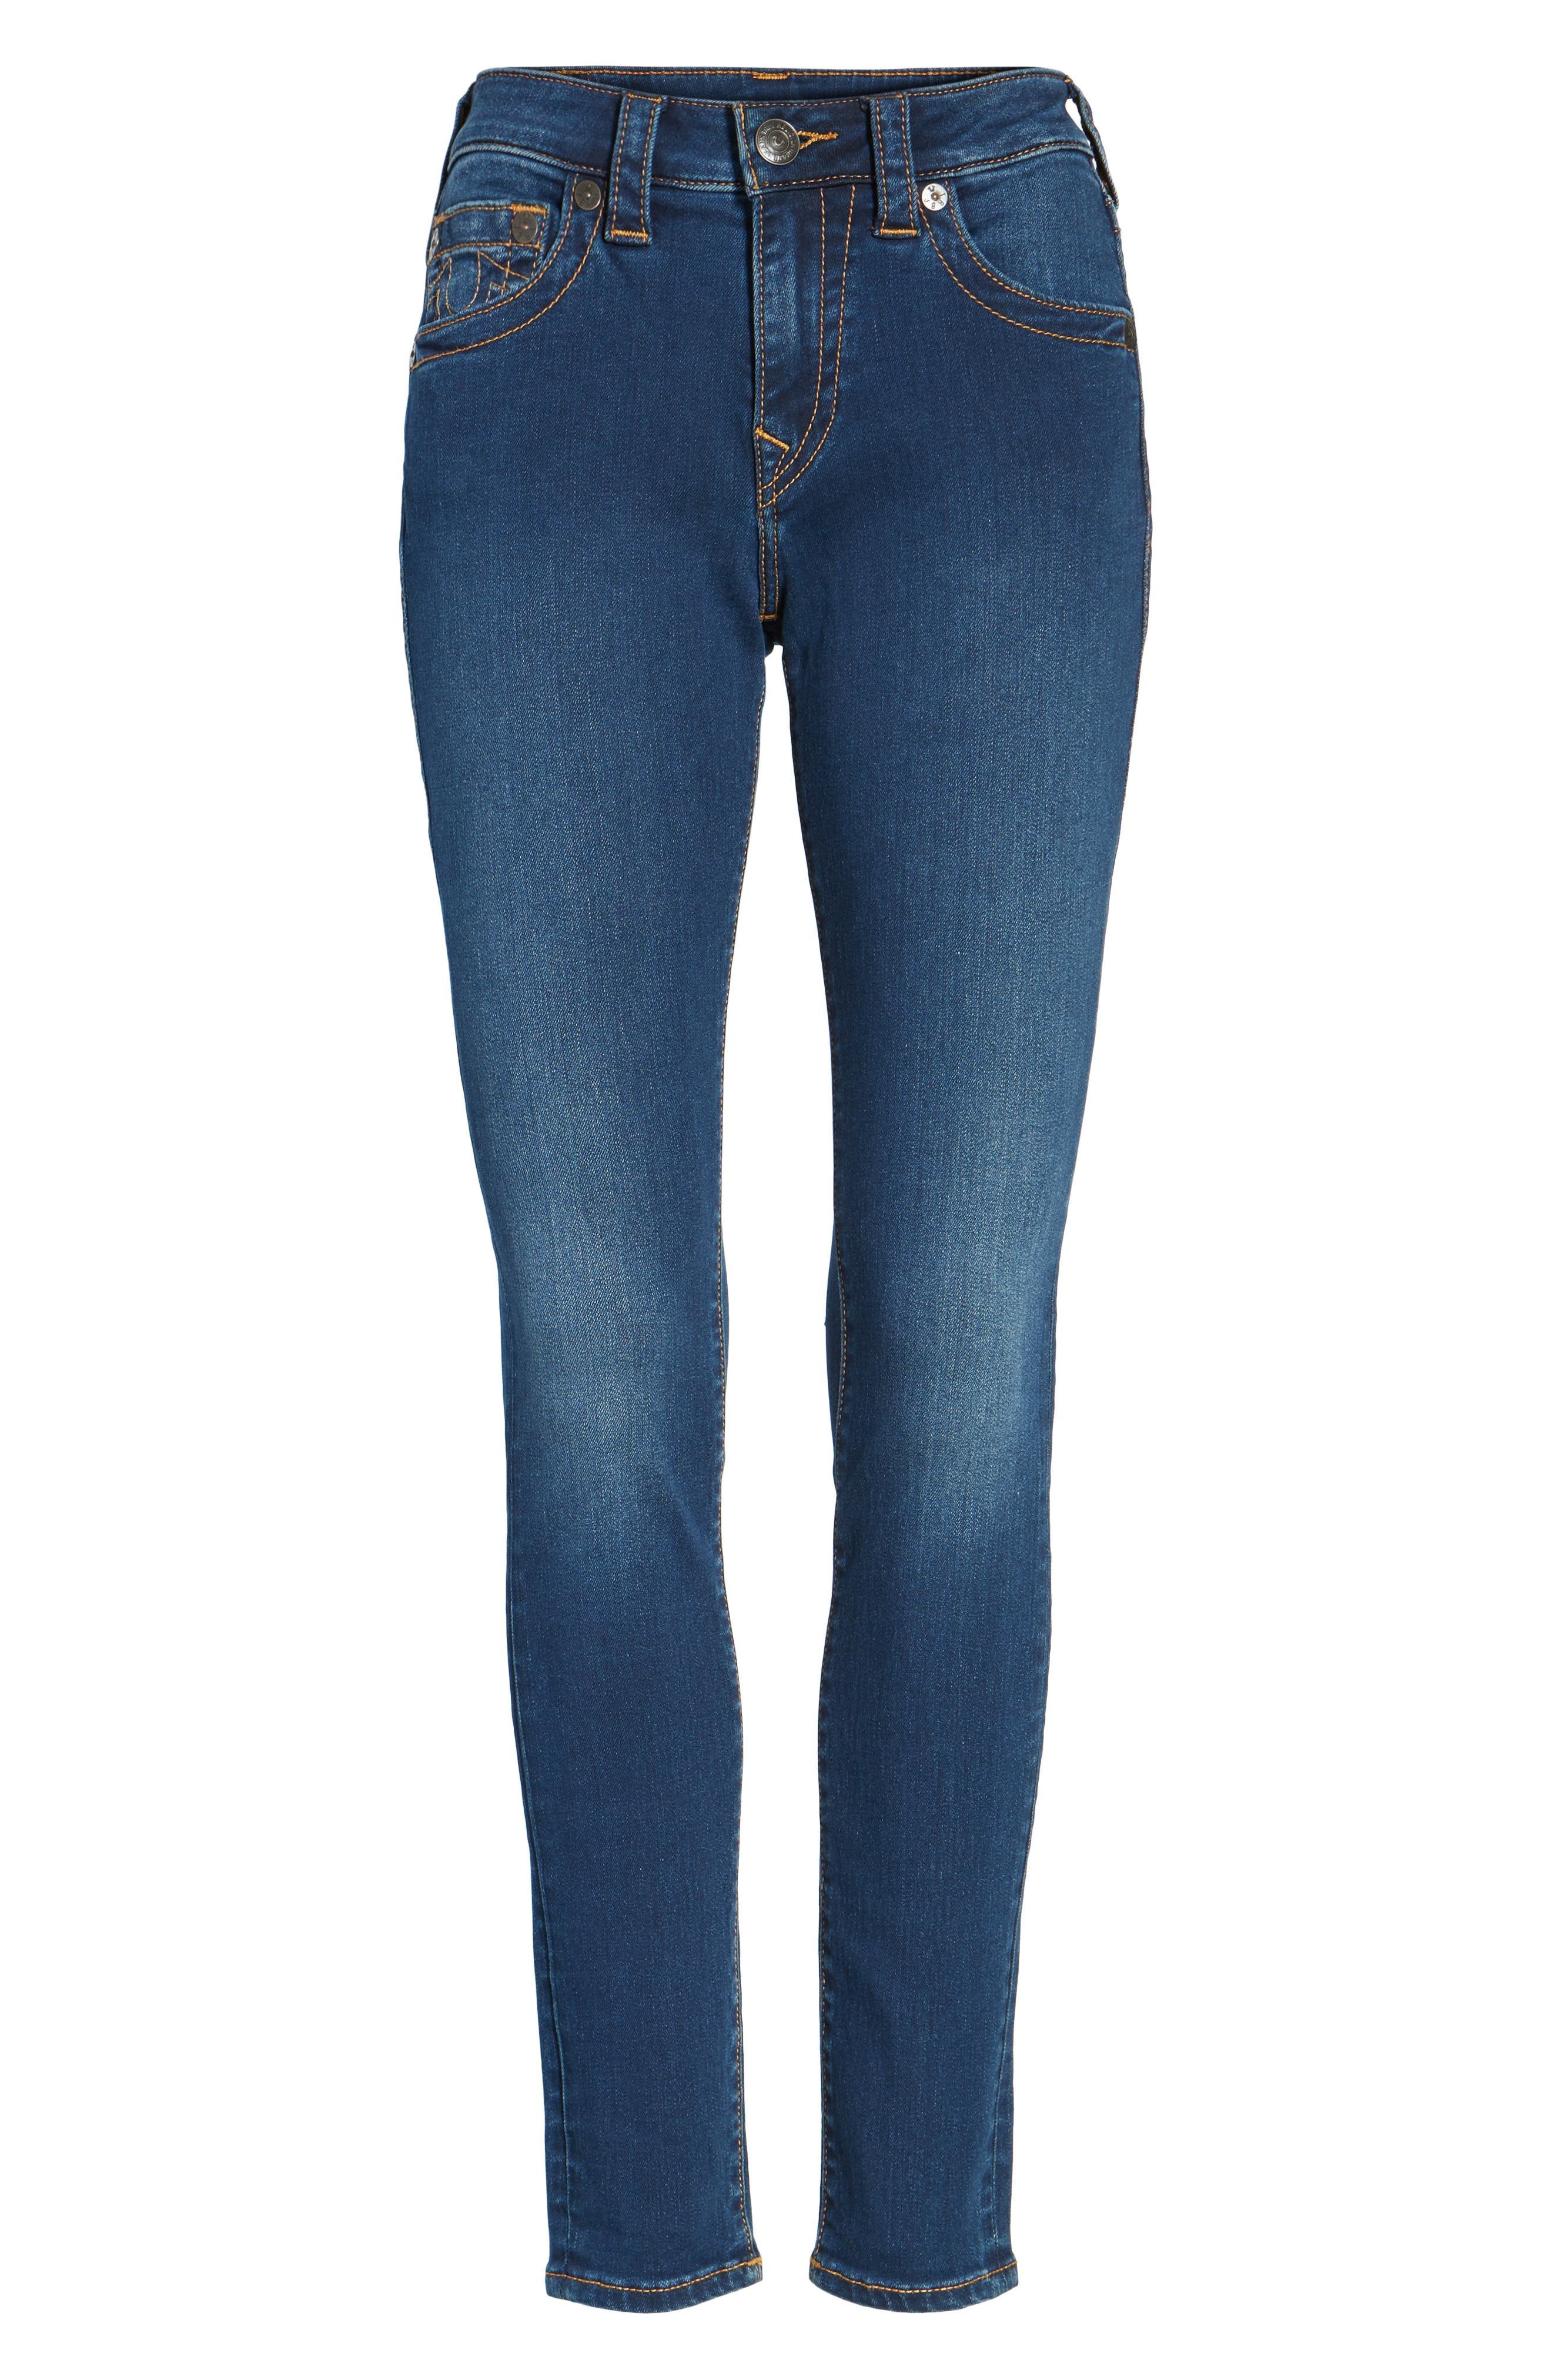 Jennie Curvy Skinny Jeans,                             Alternate thumbnail 6, color,